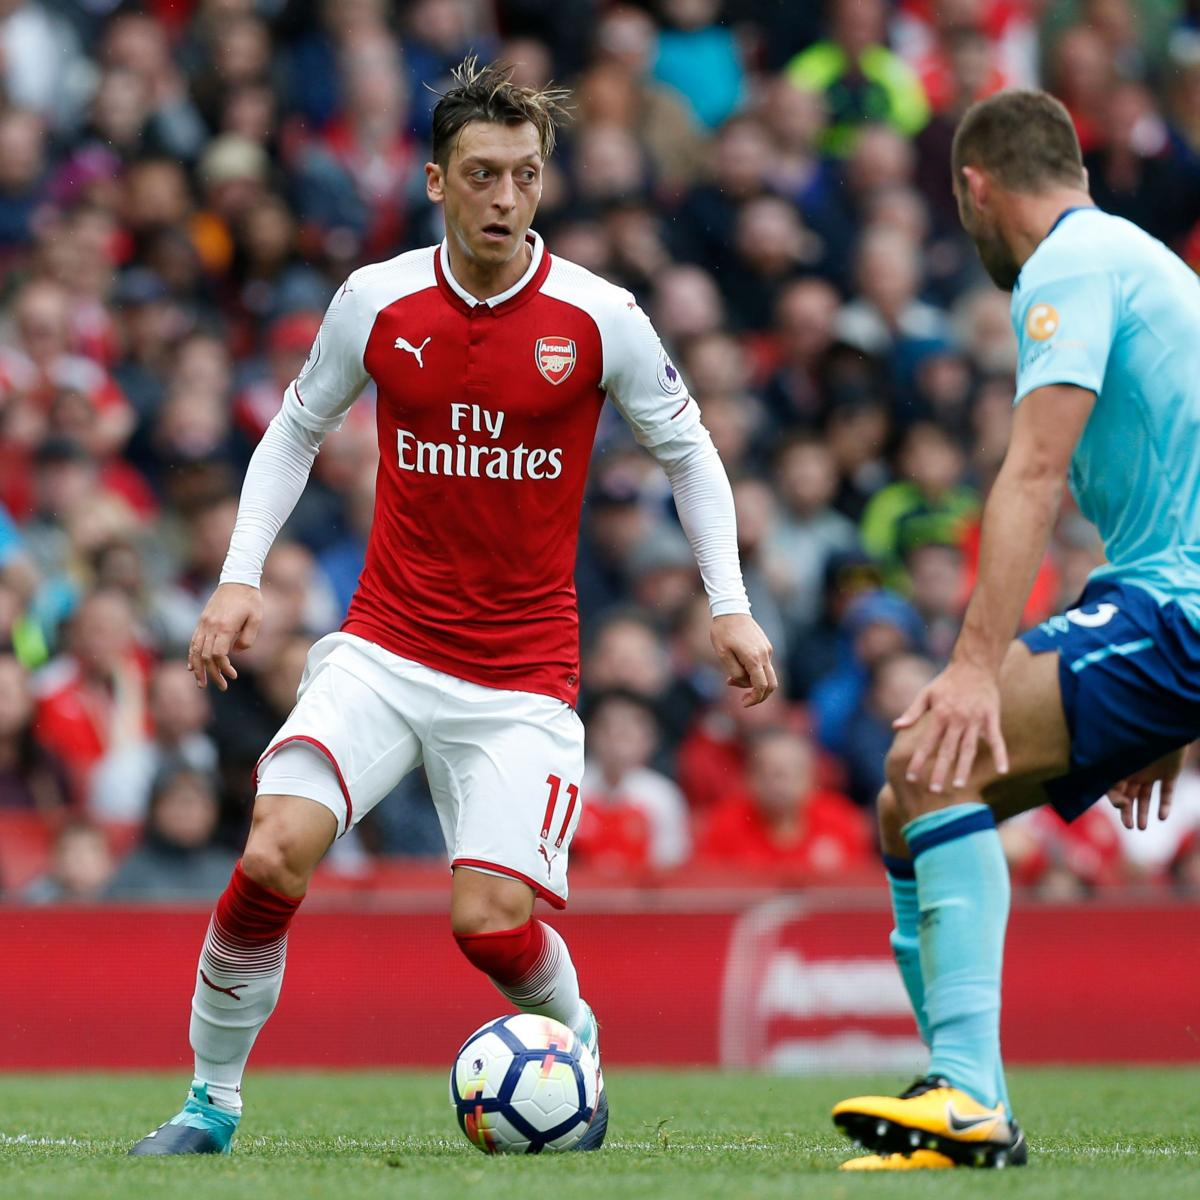 Liverpool Transfer News Lucas Moura Comments On Reds: Arsenal Transfer News: Latest Mesut Ozil Rumours, Lucas